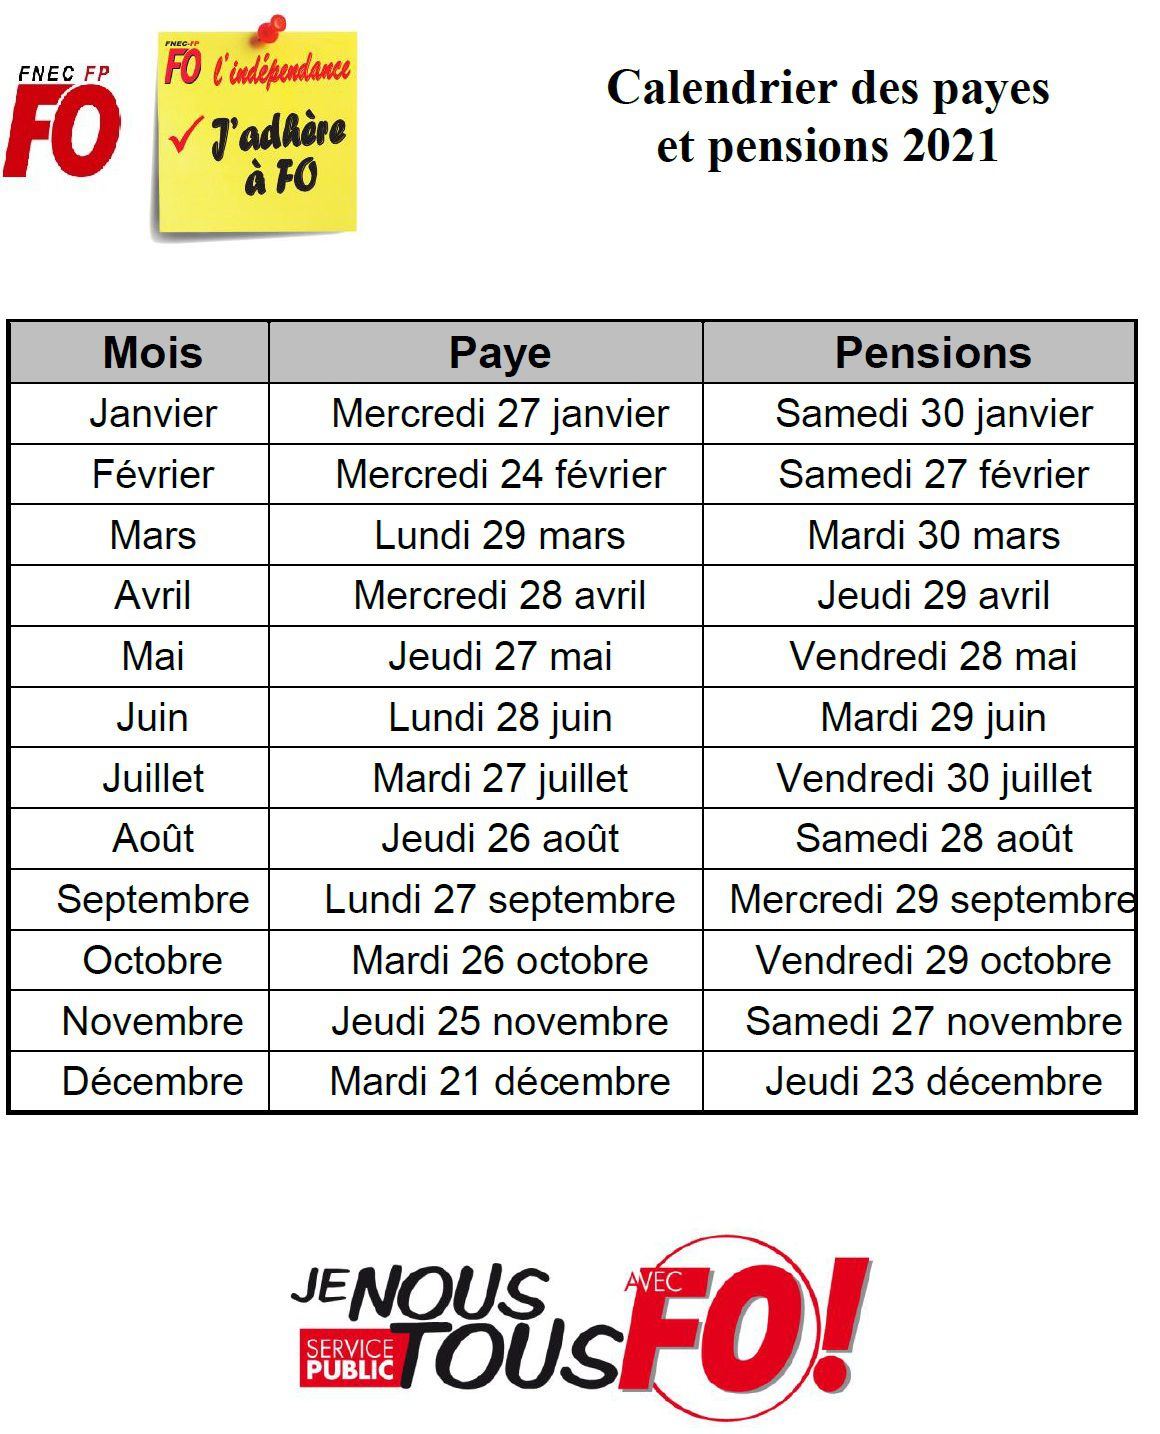 calendrier payes et pensions 2021